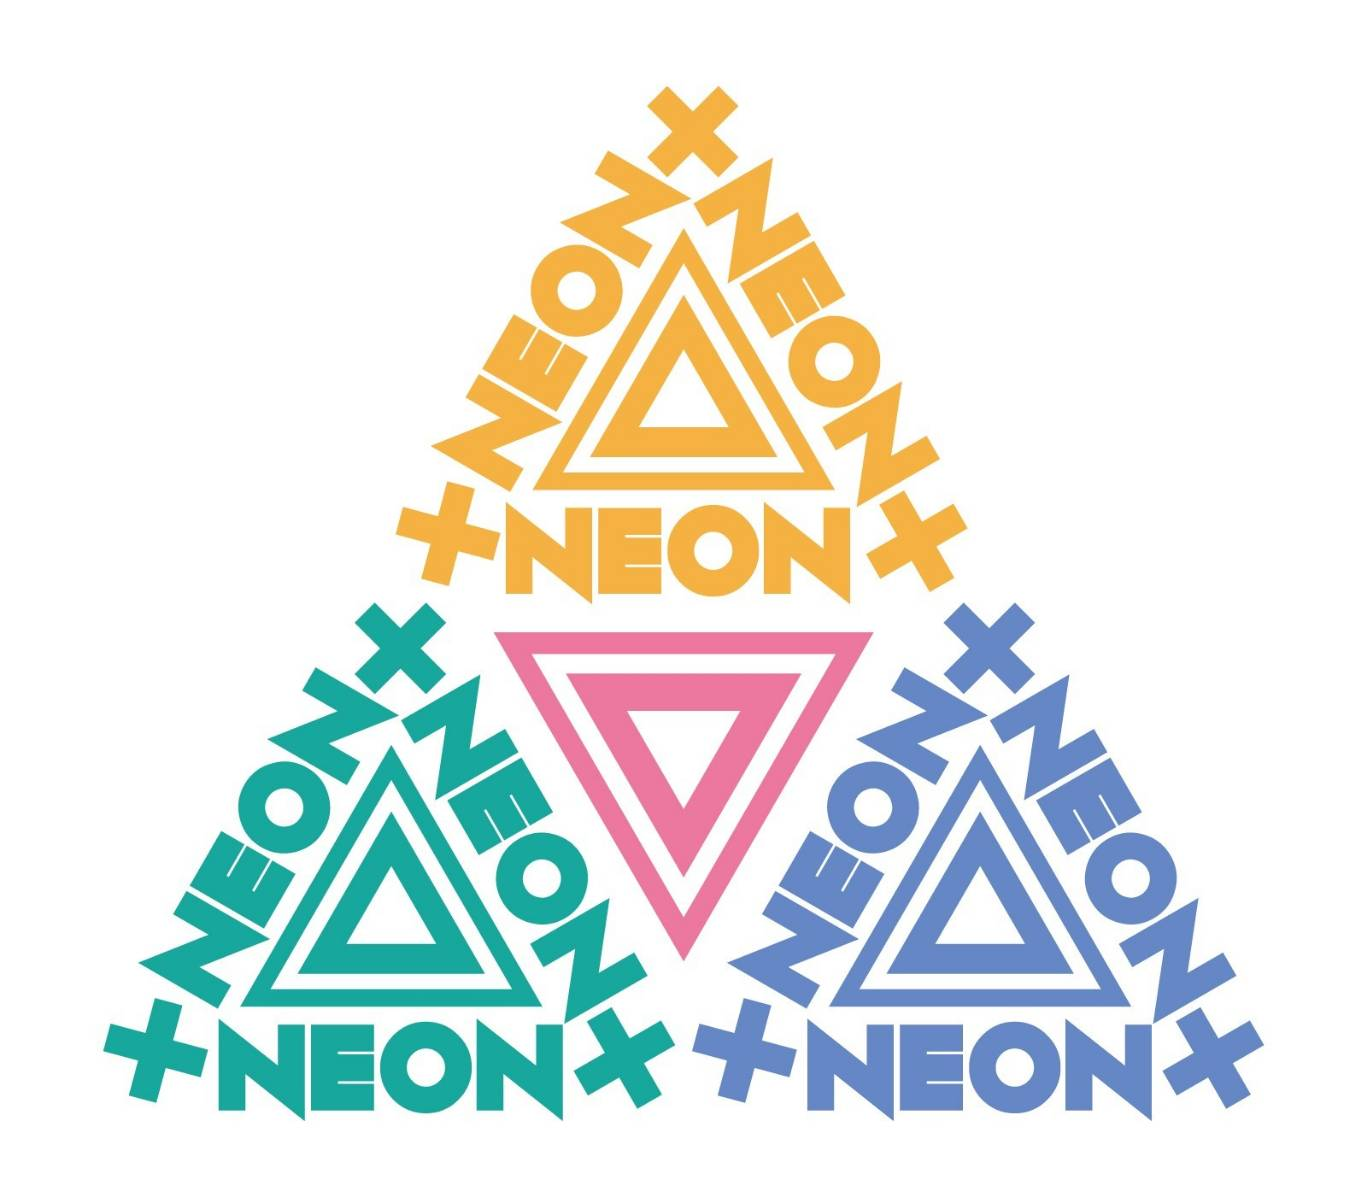 2019年7月11日(木) 『NEON×NEON×NEON in NAGOYA』〜DAY1〜